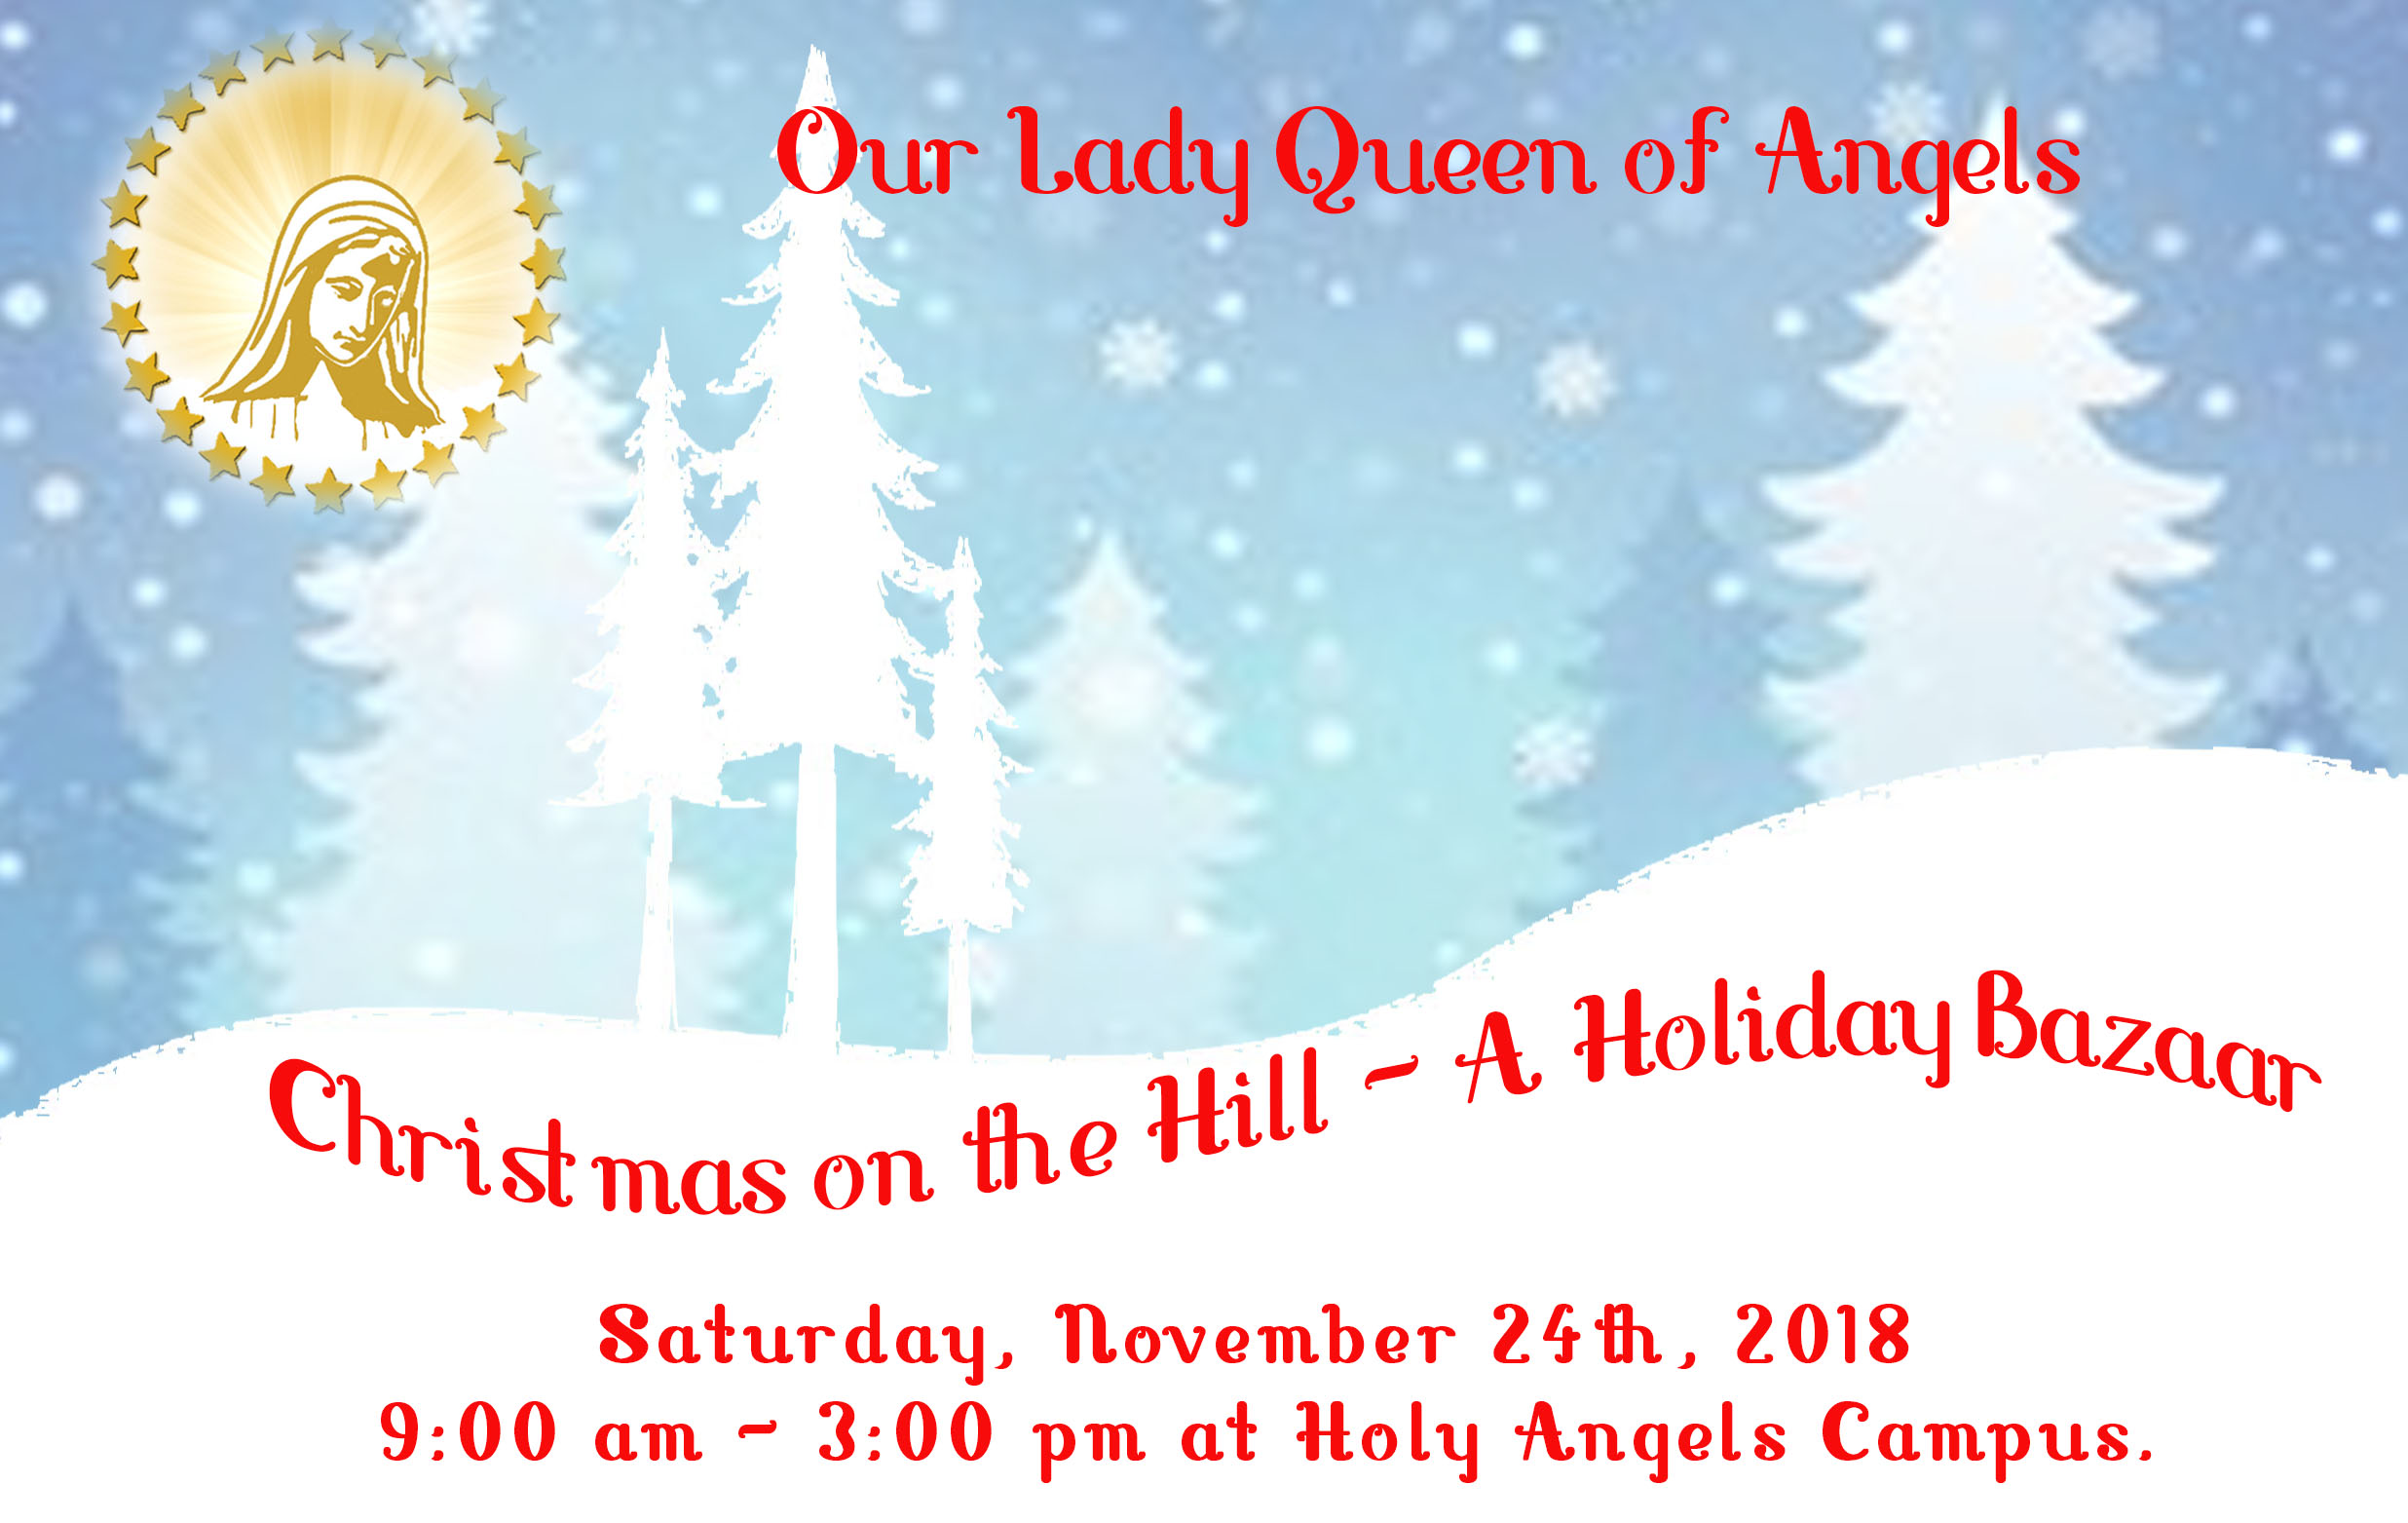 Our Lady Queen of Angels Christmas on the Hill – A Holiday Bazaar